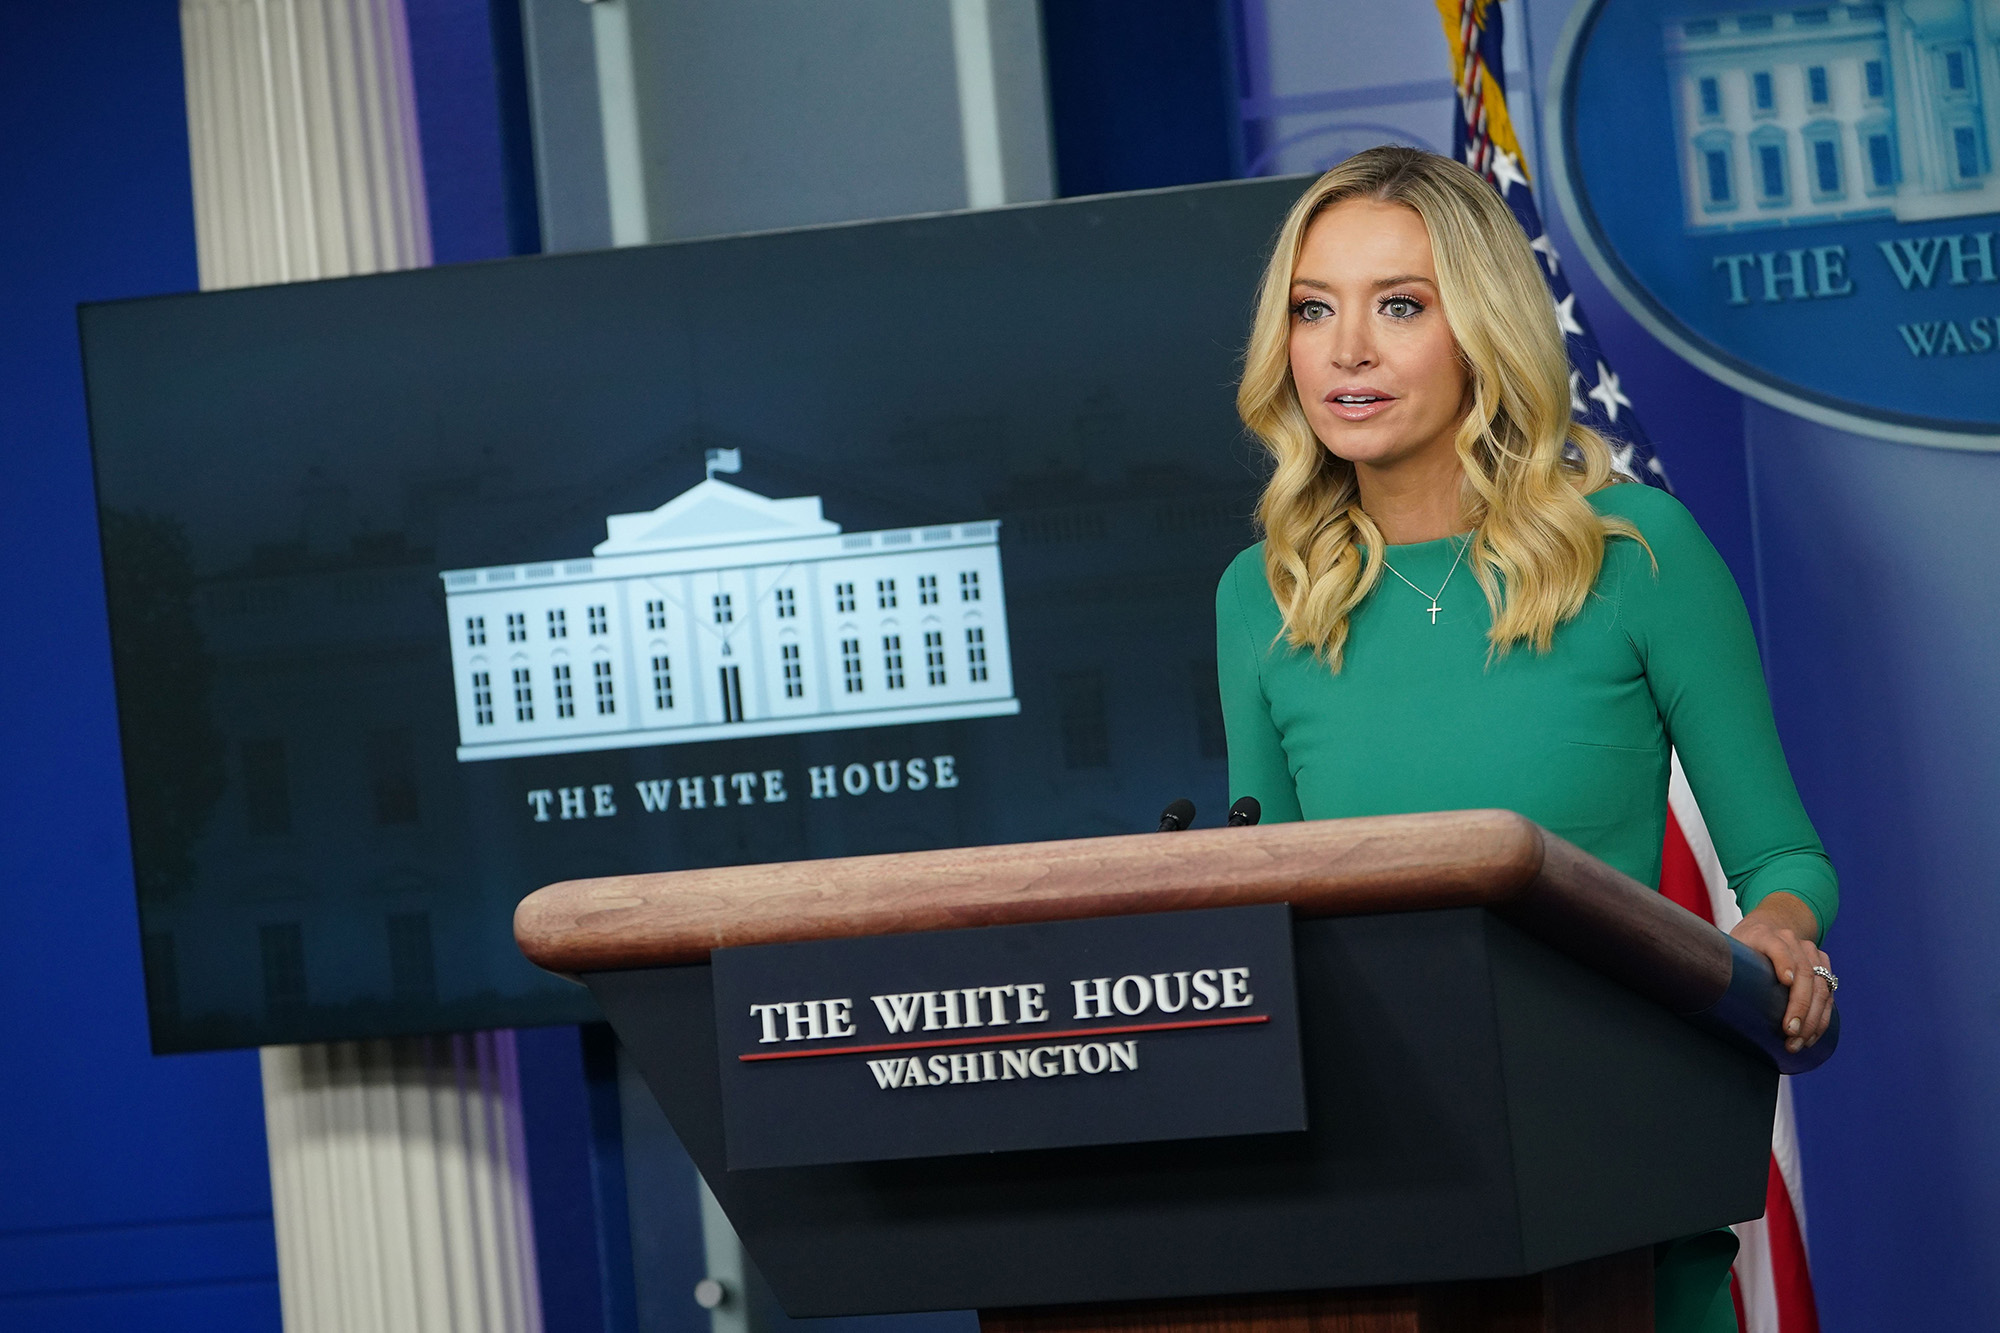 White House Press Secretary Kayleigh McEnany speaks during a press briefing at the White House in Washington DC, on November 20.